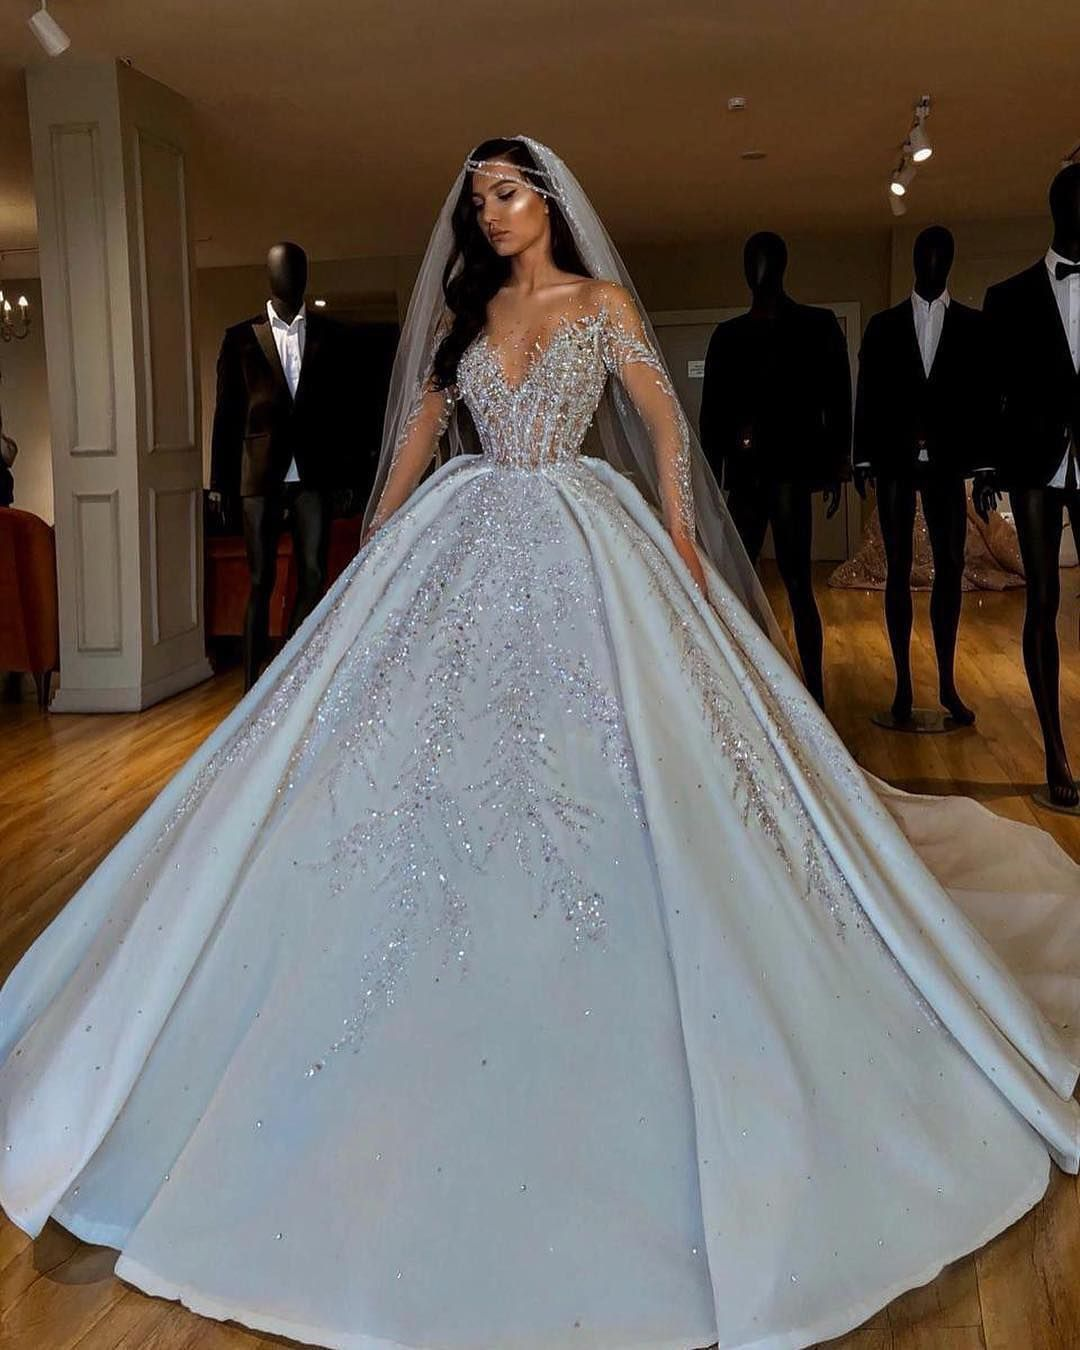 Insta World Of Fashion Photos Videos White Ball Gowns Ball Gown Wedding Dress Long Sleeve Bridal Dresses [ 1350 x 1080 Pixel ]